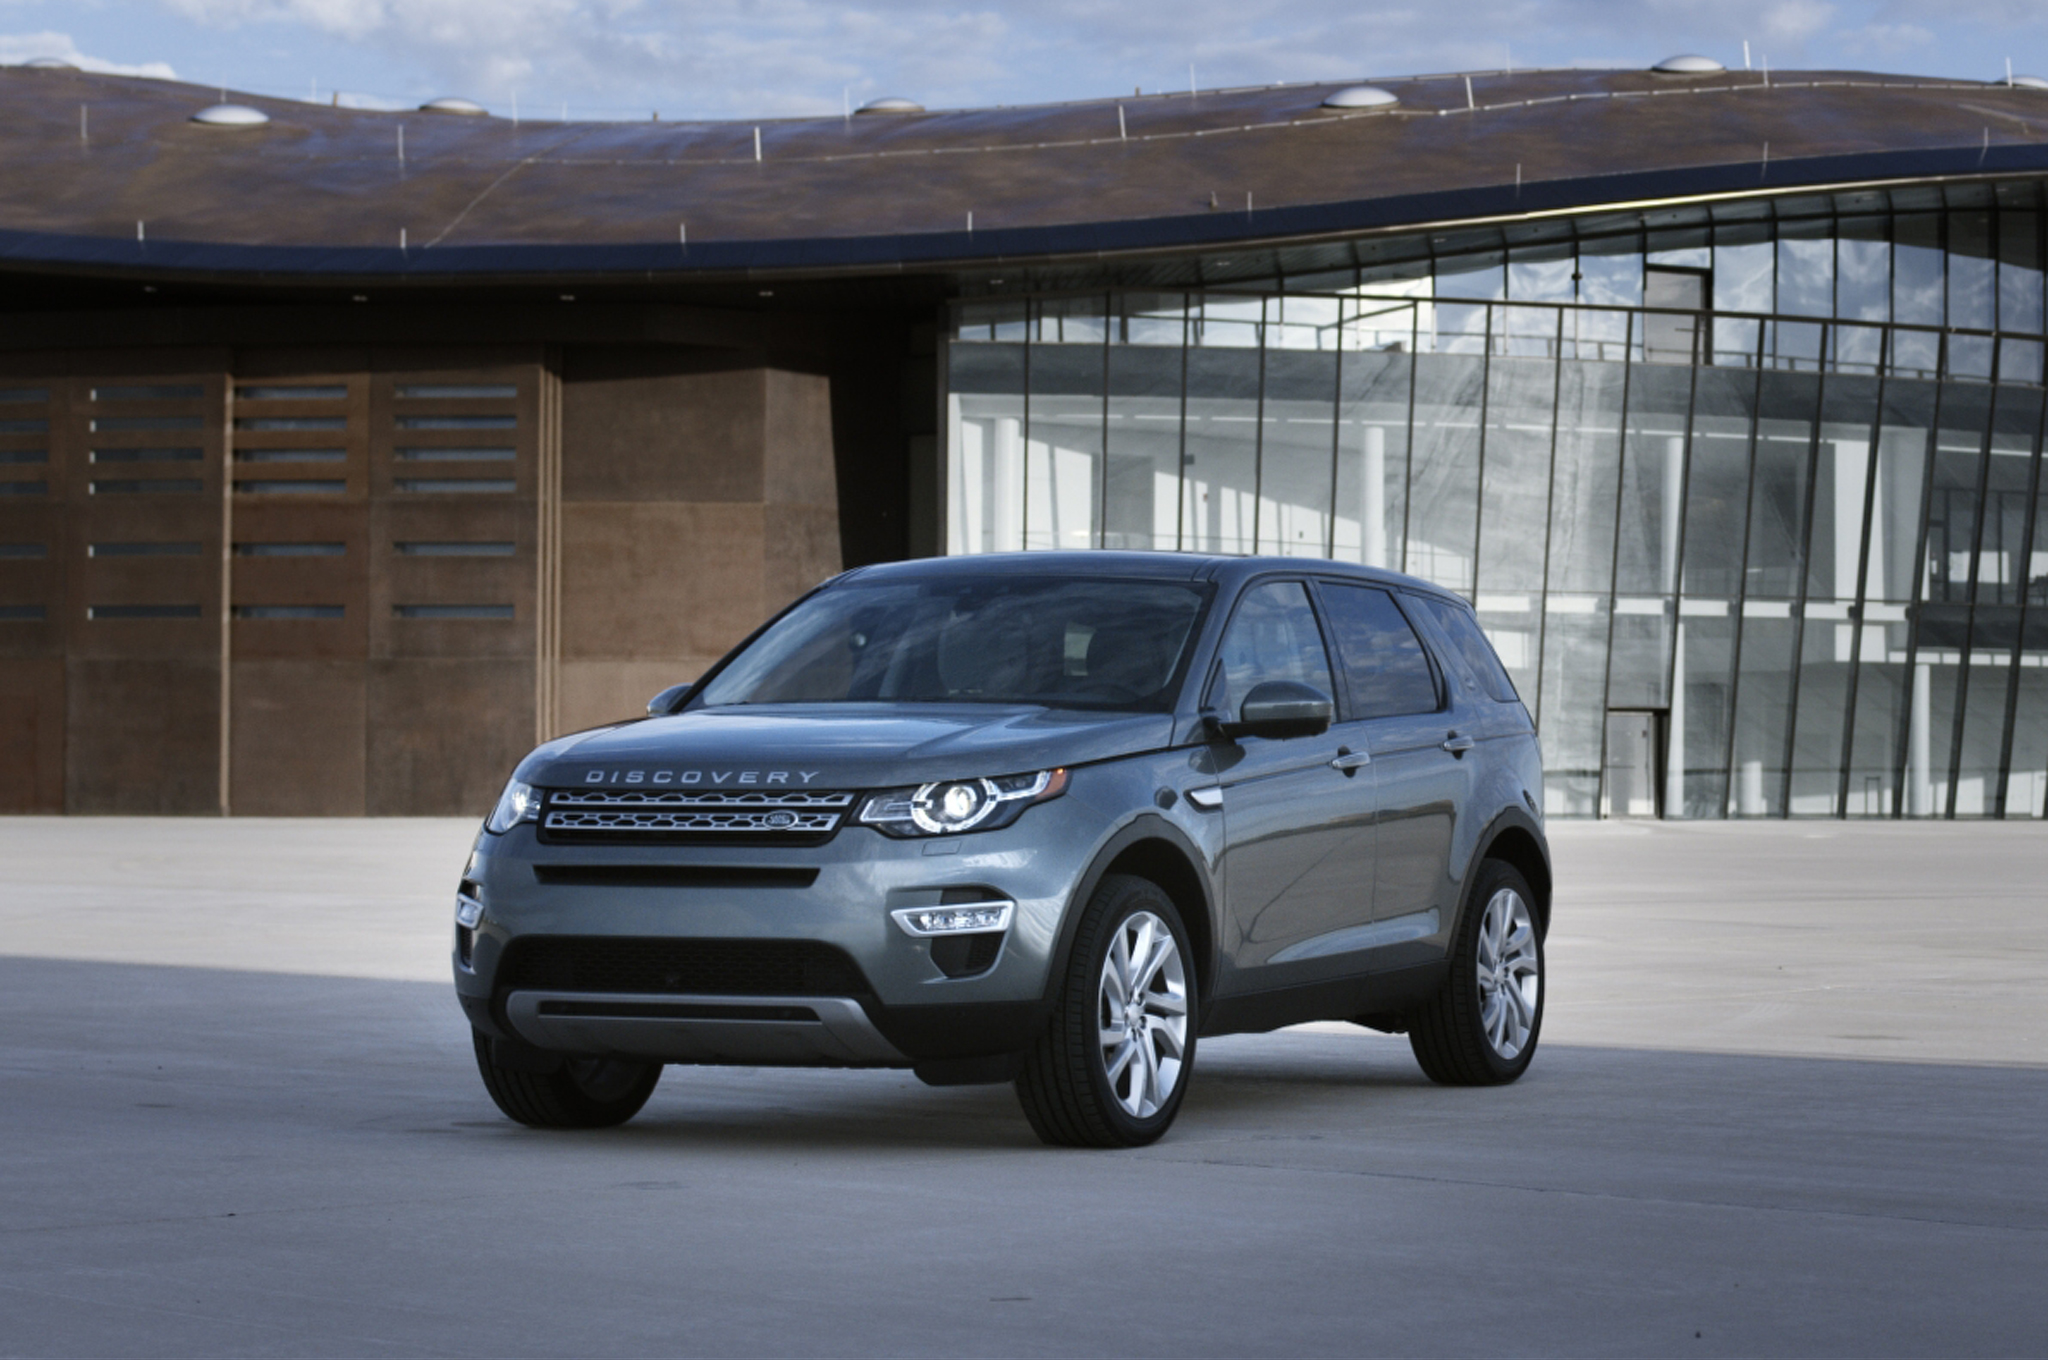 2015 Land Rover Discovery Sport Priced in U.S. From $37,995 - Motor ...